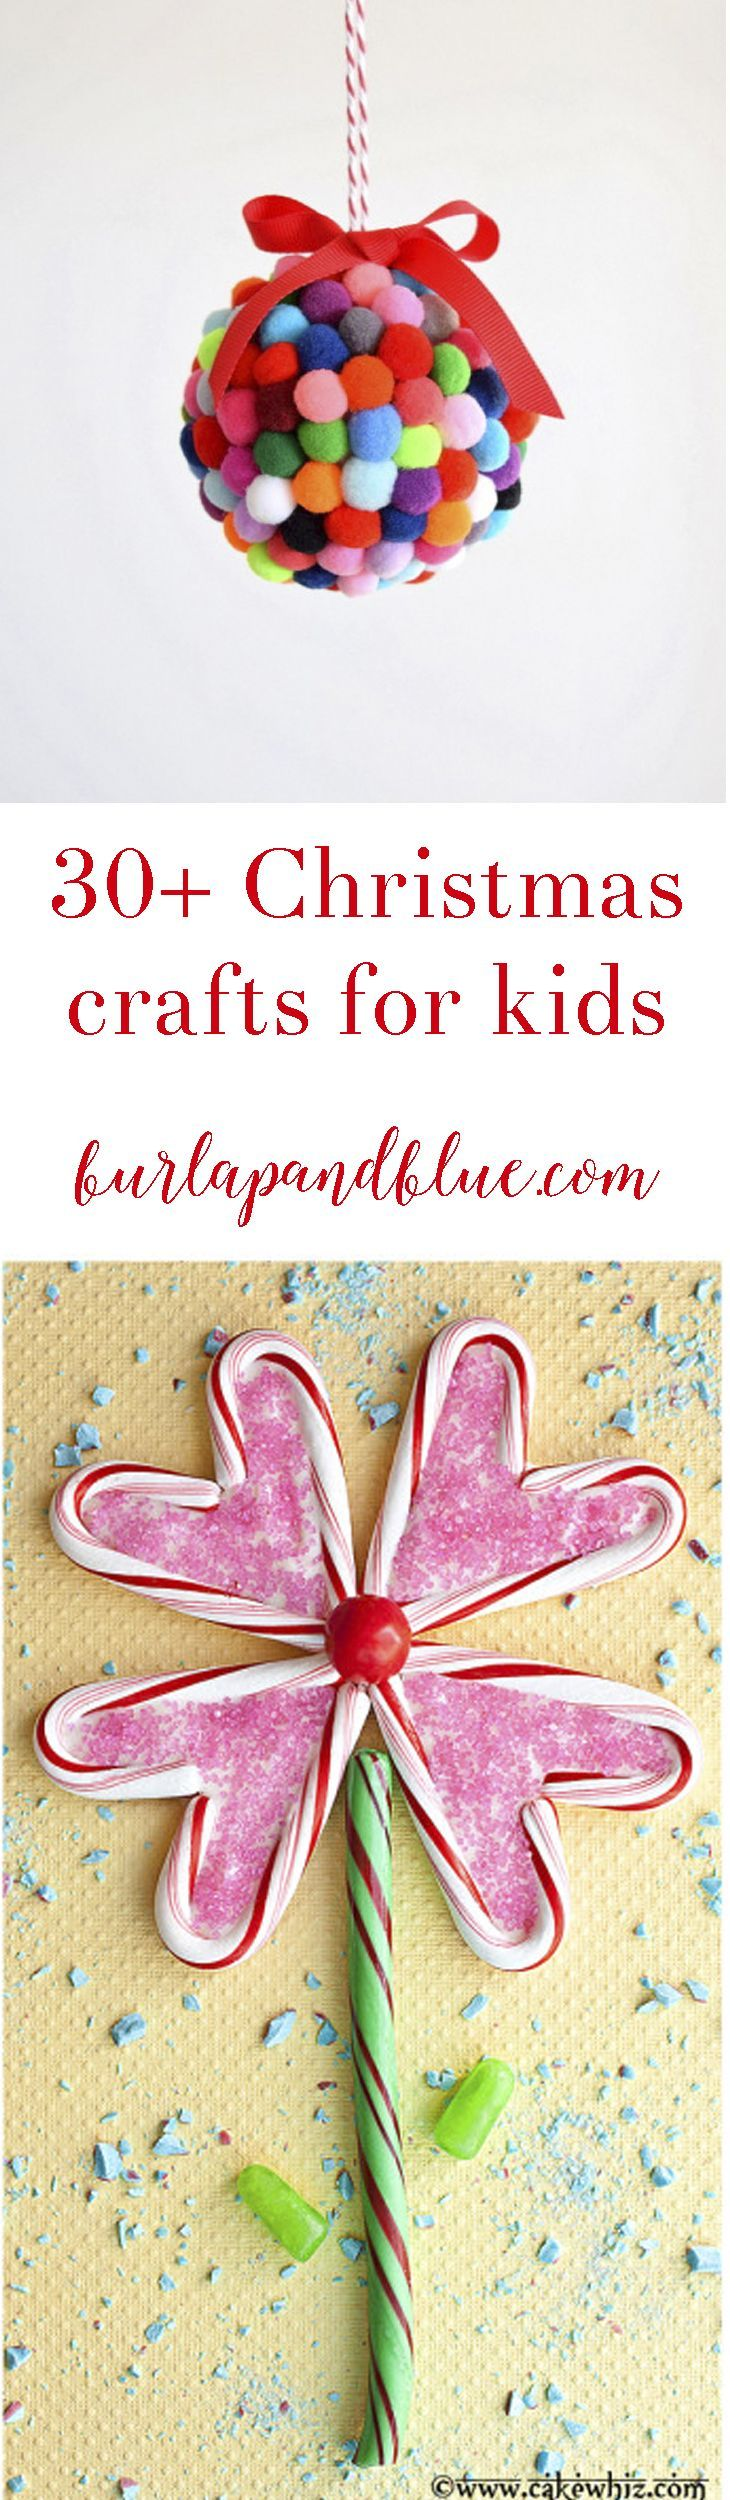 sharing over 30 favorite christmas and holiday crafts for kids children of all ages will